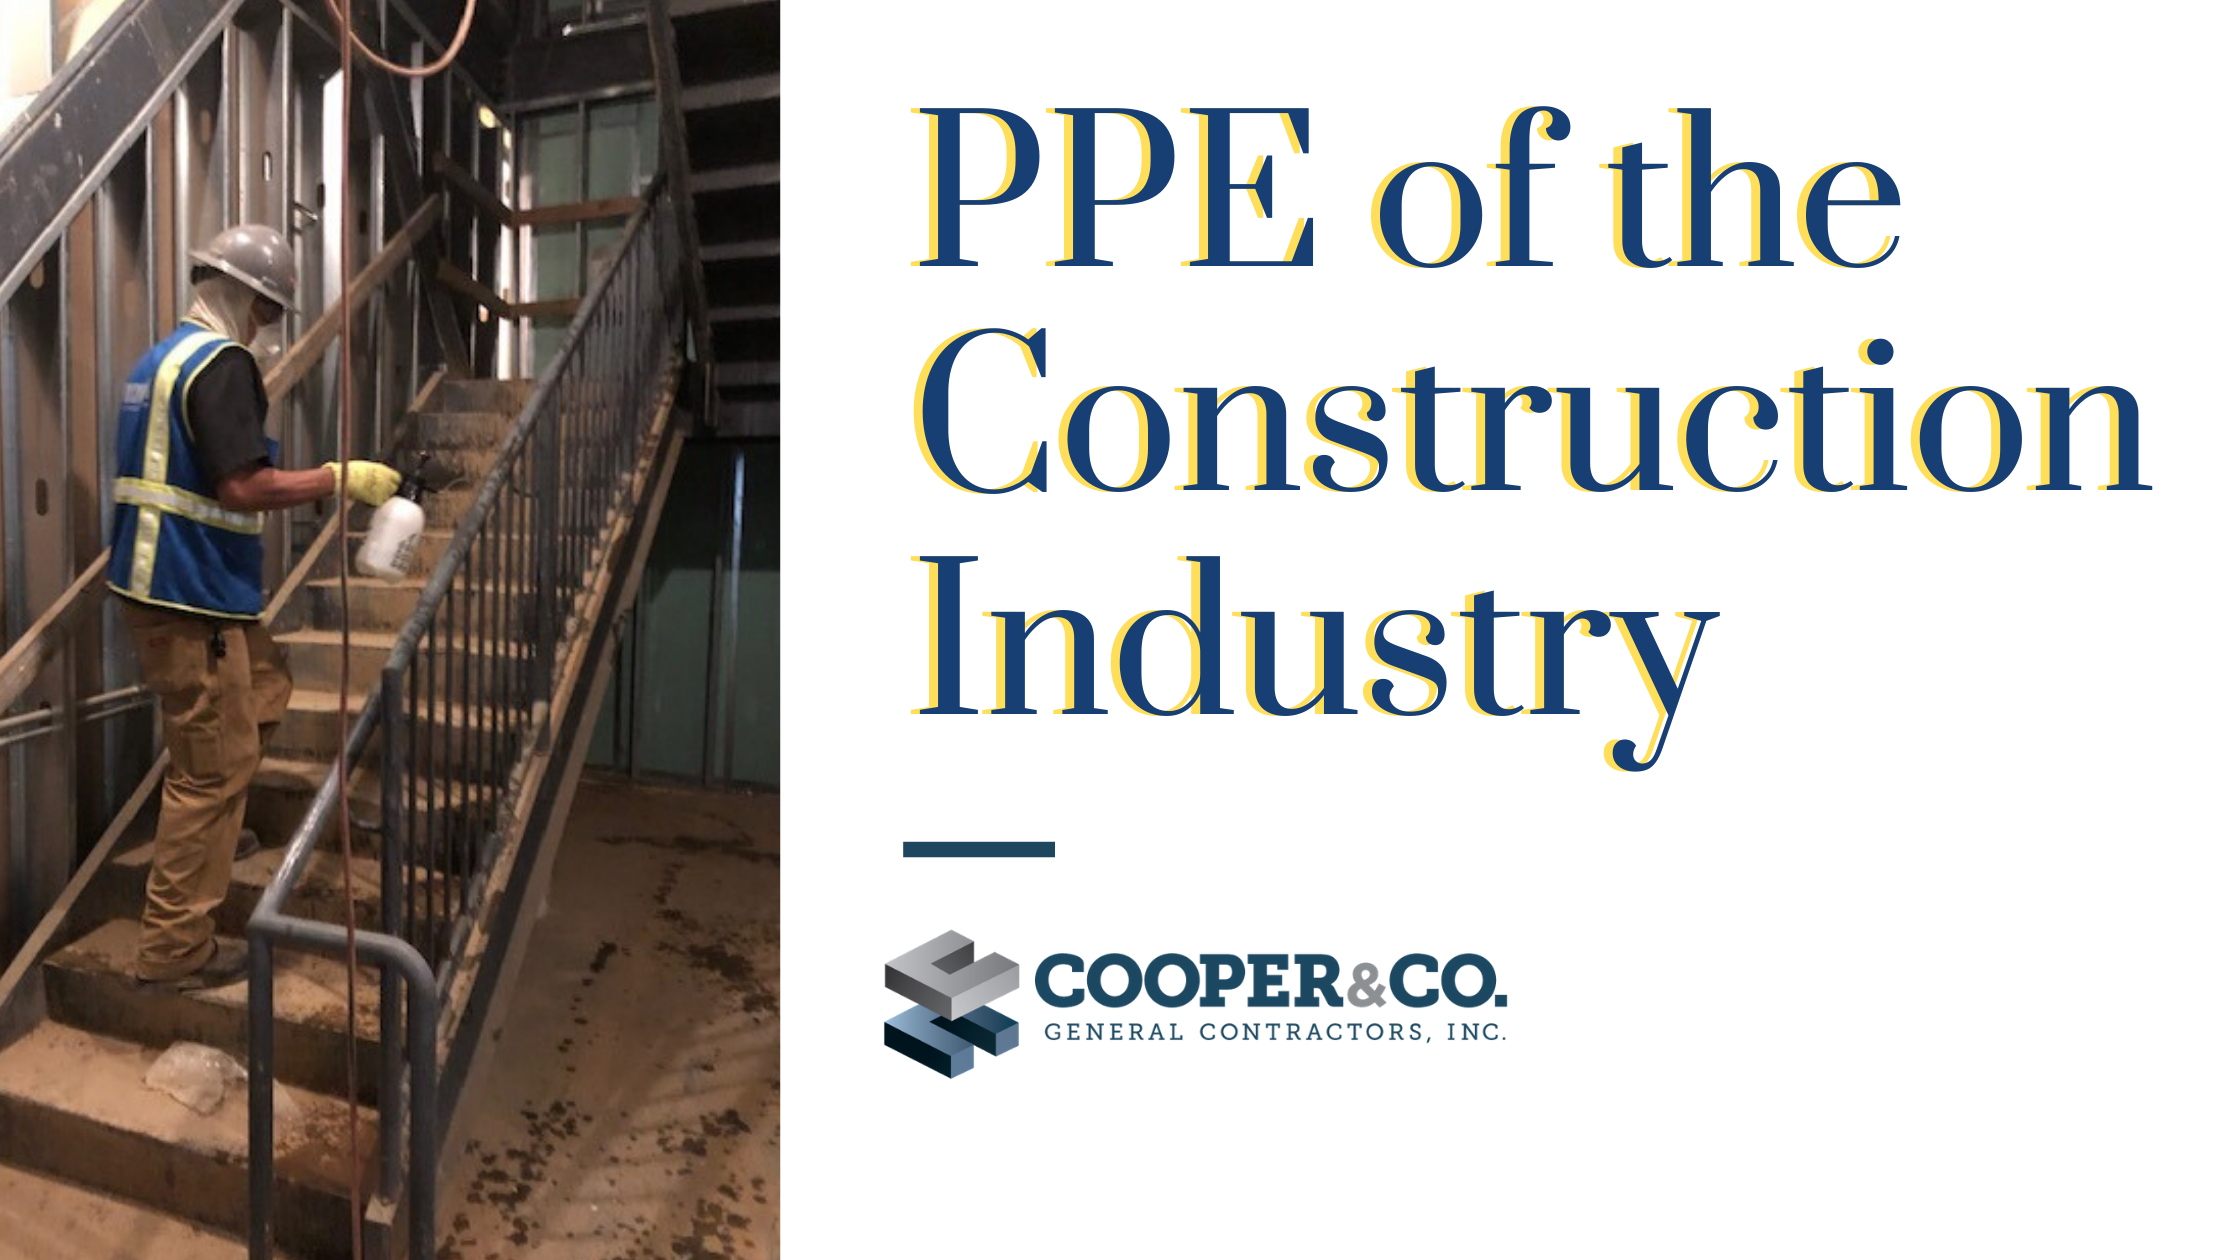 PPE of the Construction Industry